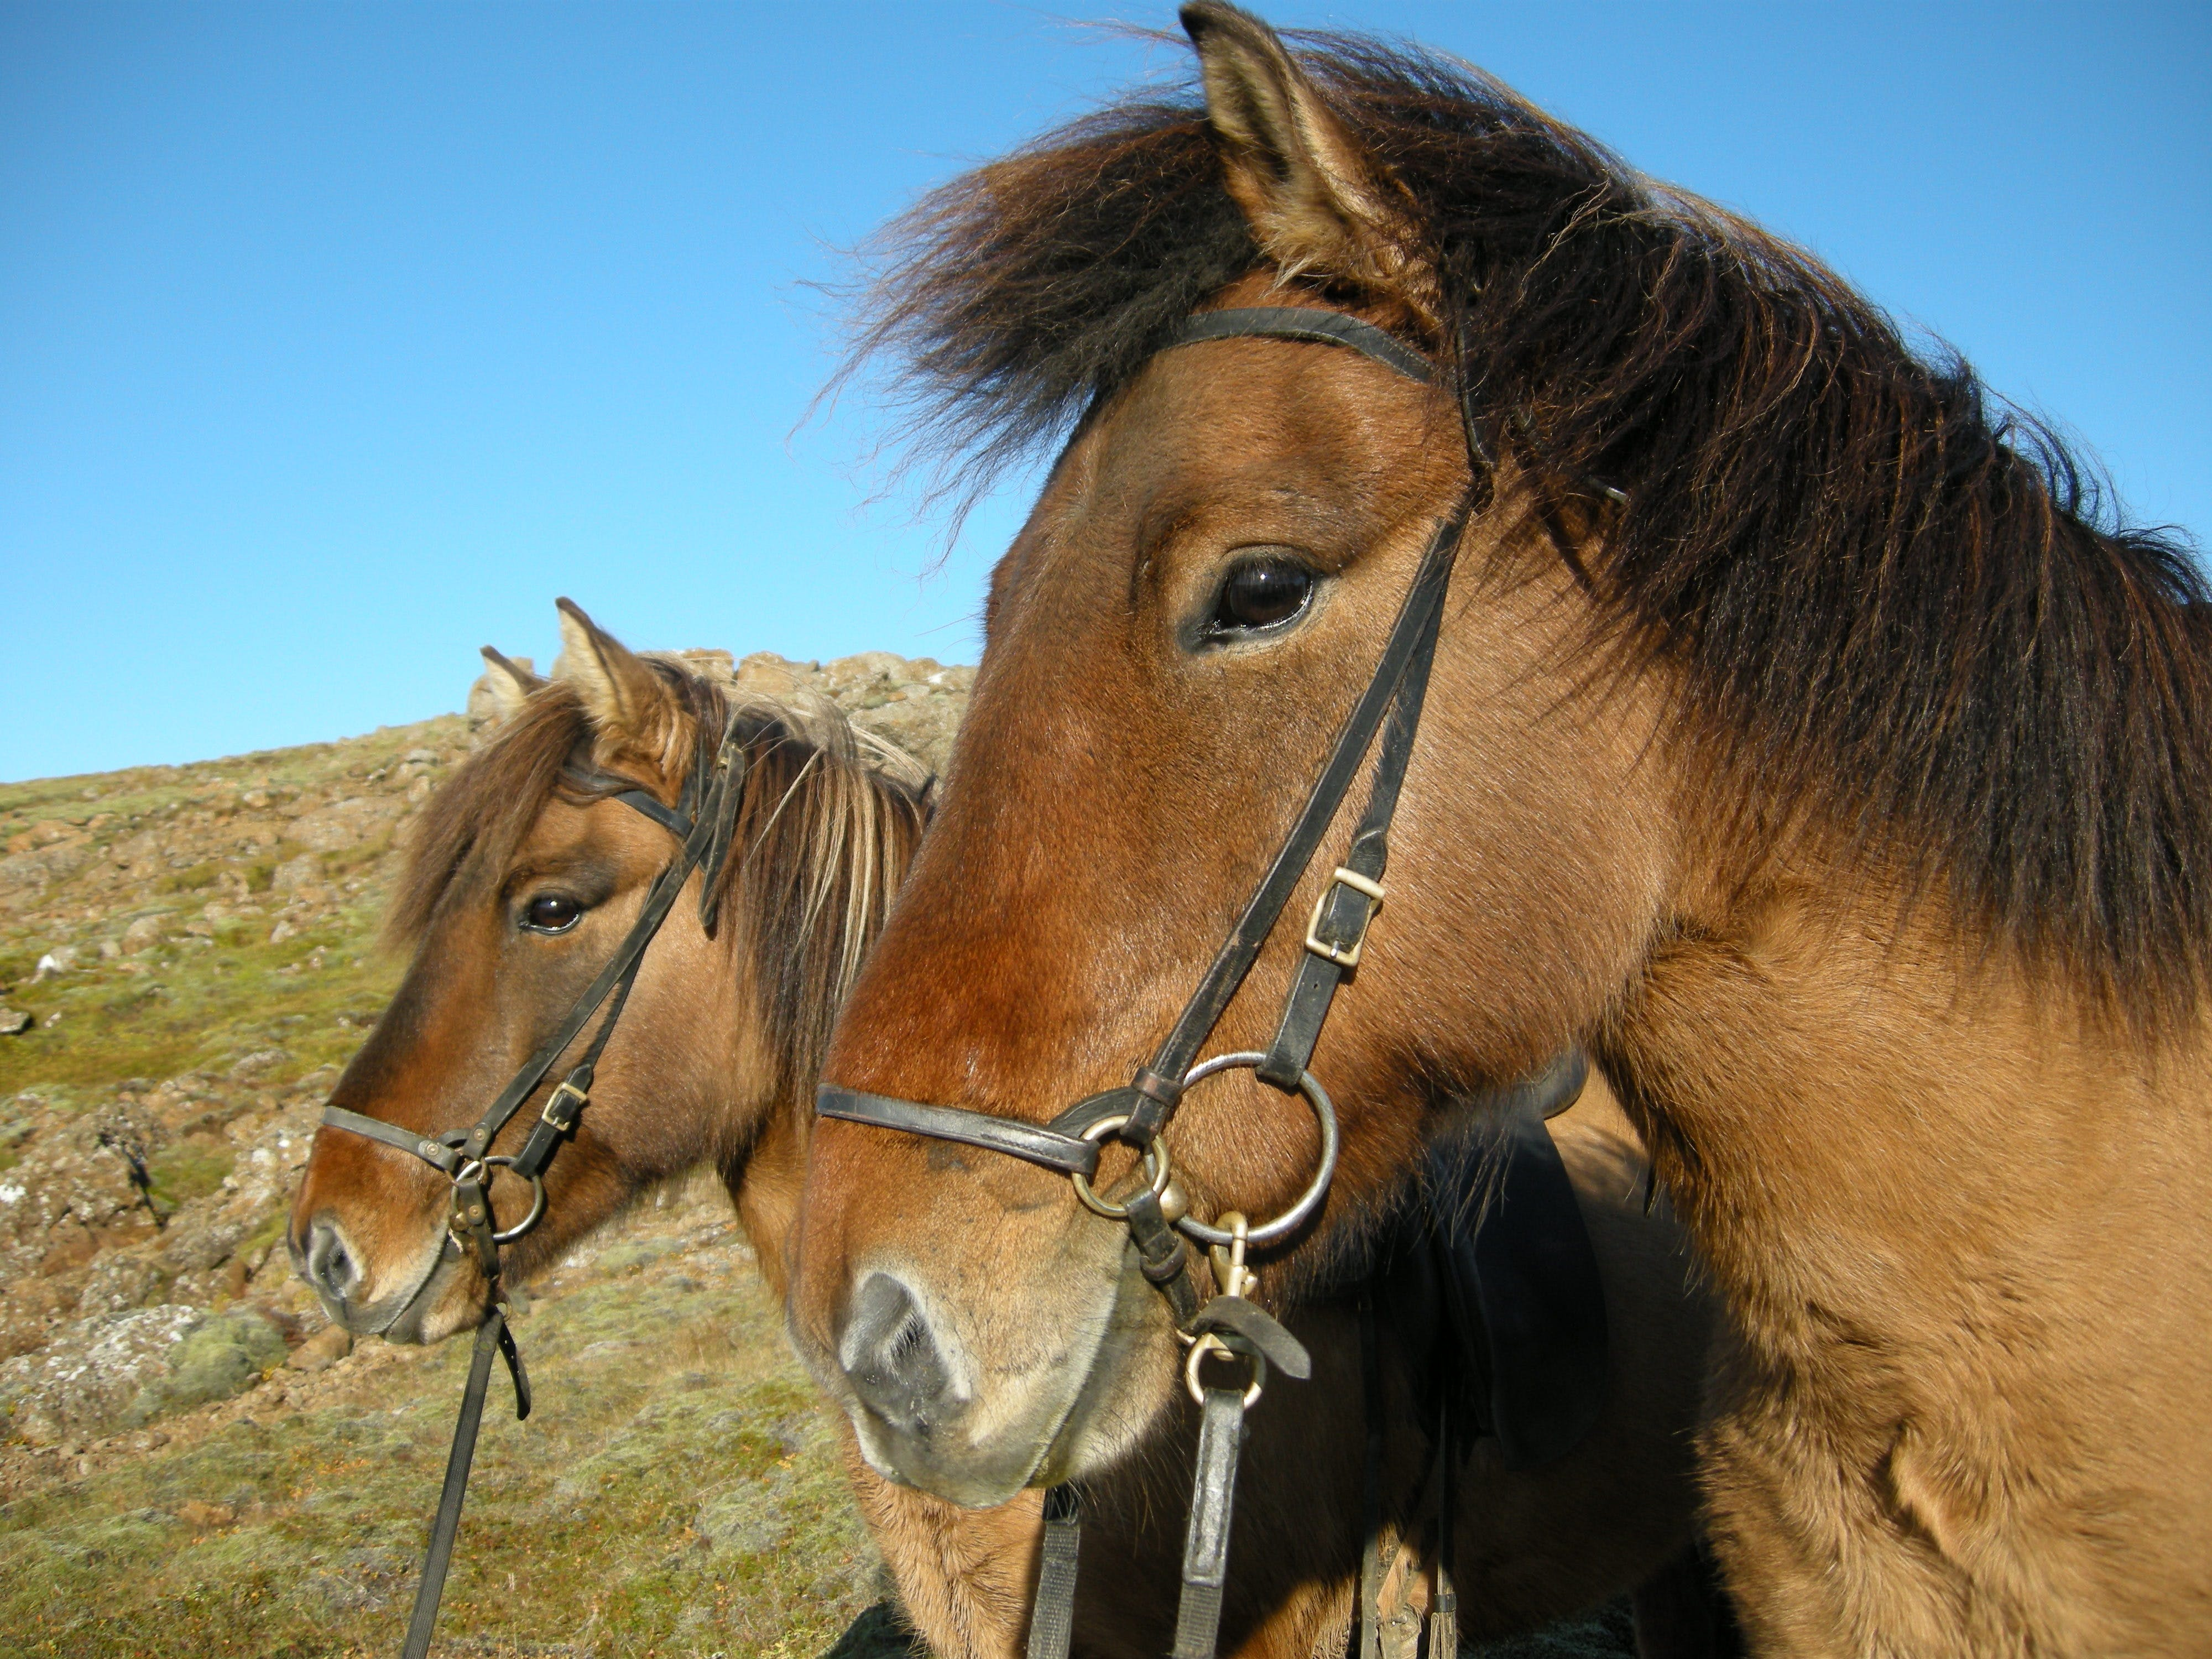 You'll get to meet the mild-tempered Icelandic horse on a horse riding tour.